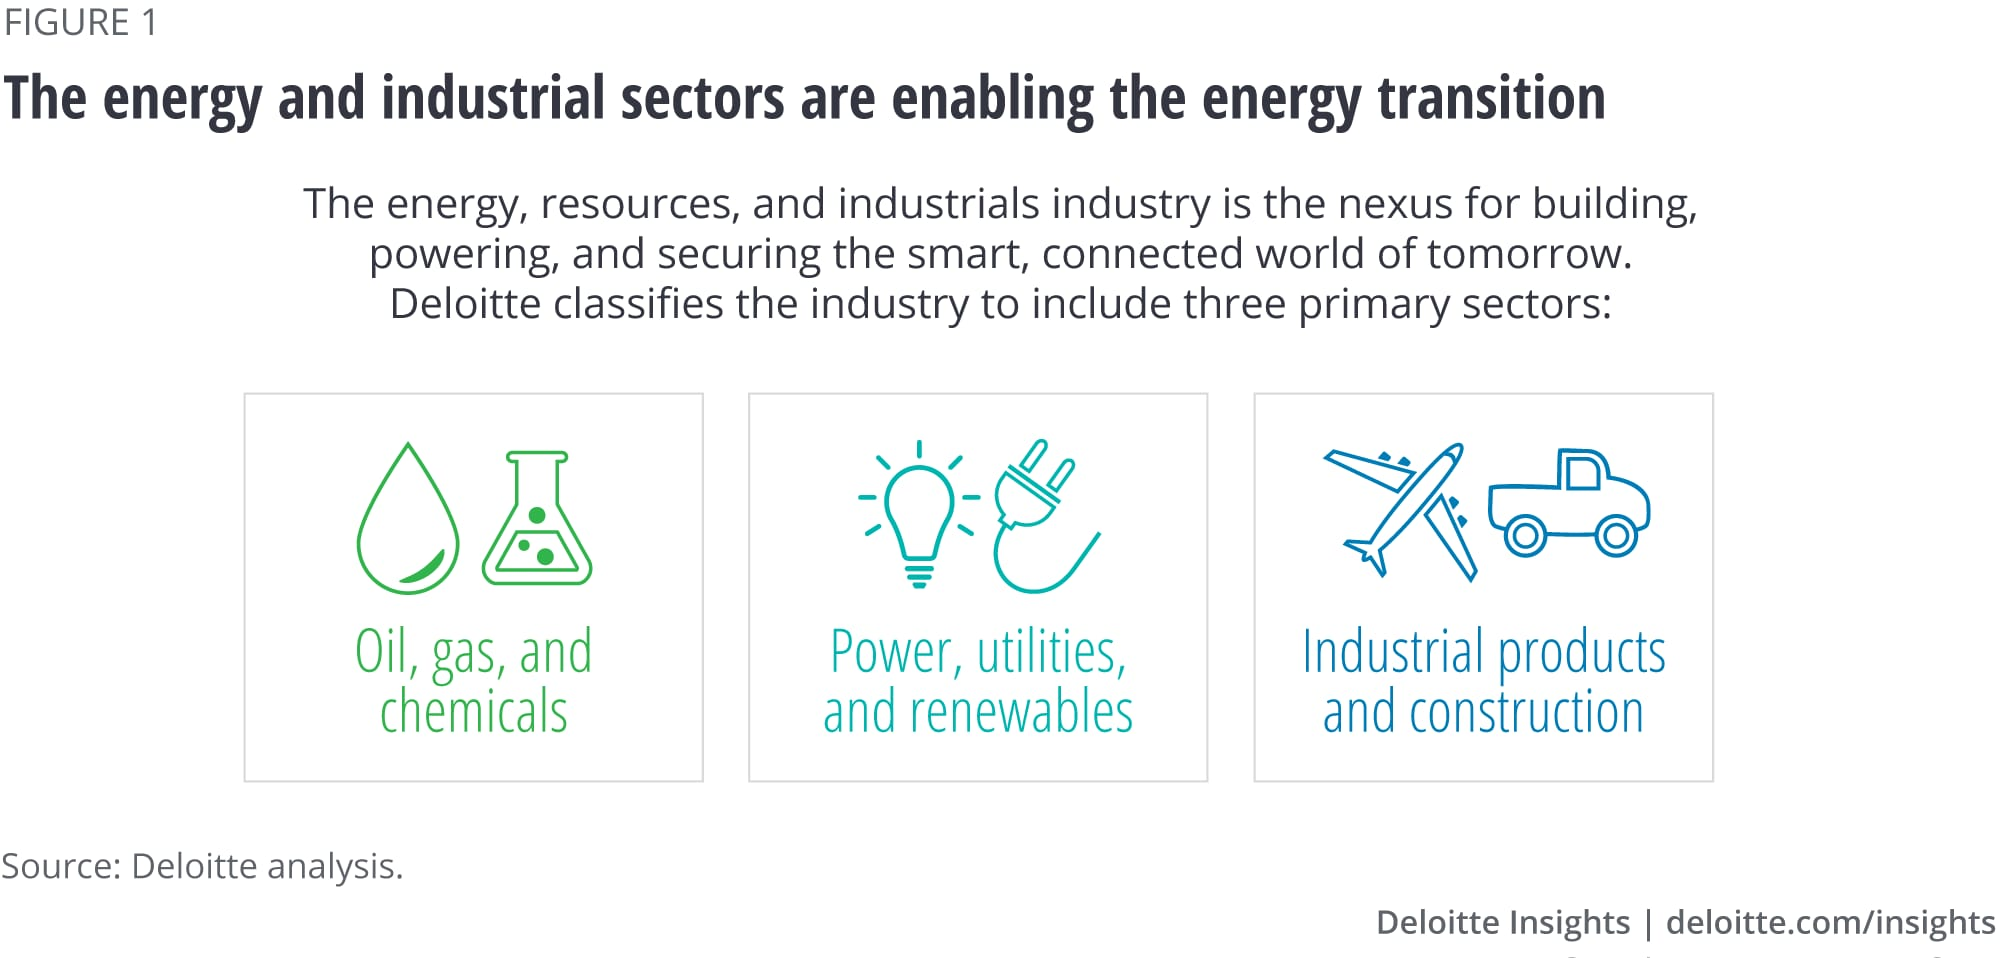 The energy and industrials sectors are enabling the energy transition